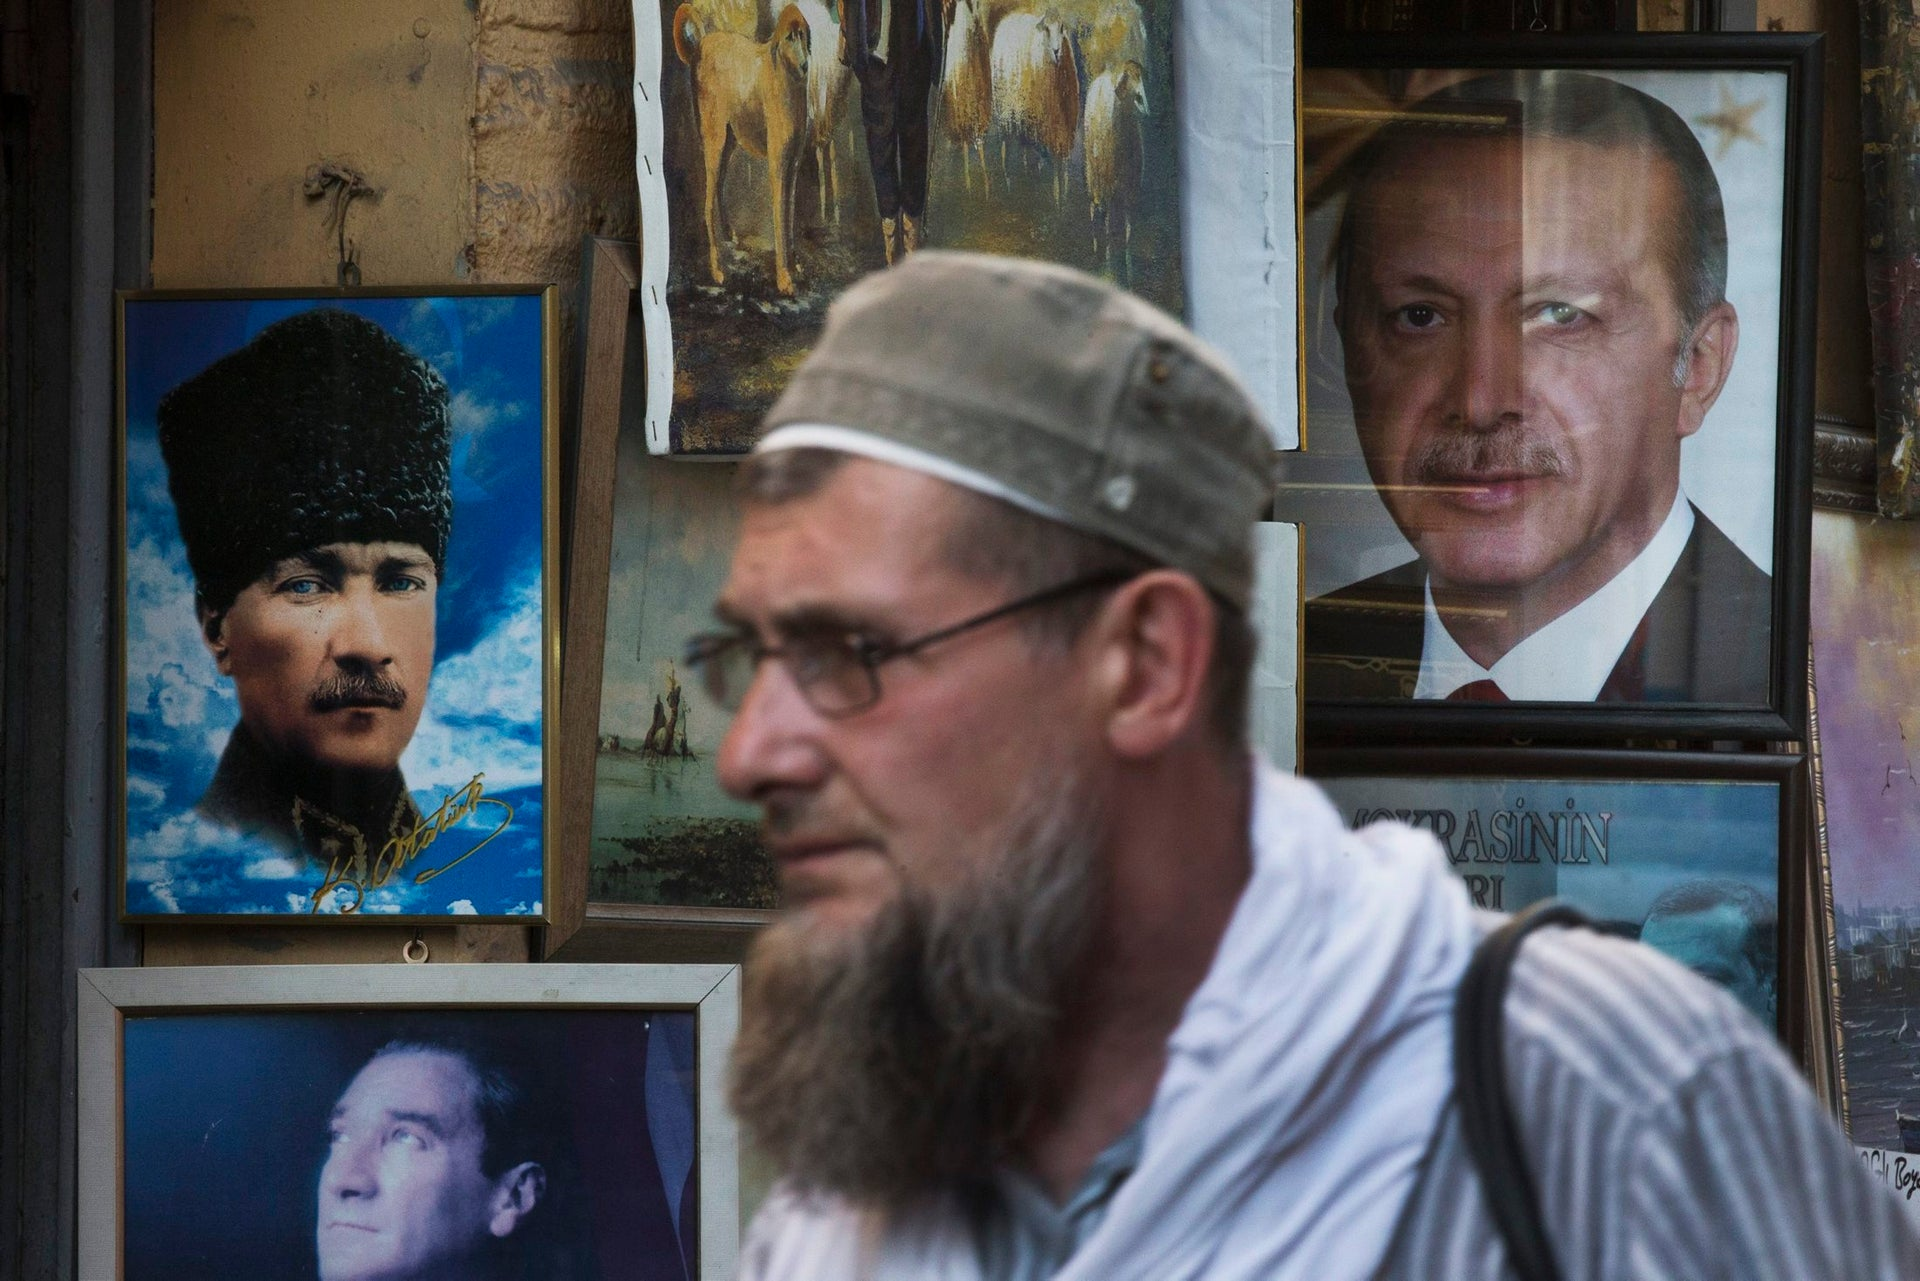 The portraits of Turkey's founder Kemal Ataturk, left, and current President Recep Tayyip Erdogan, right, are offered for sale in a shop as a man walks by, in Istanbul, July 21, 2016.